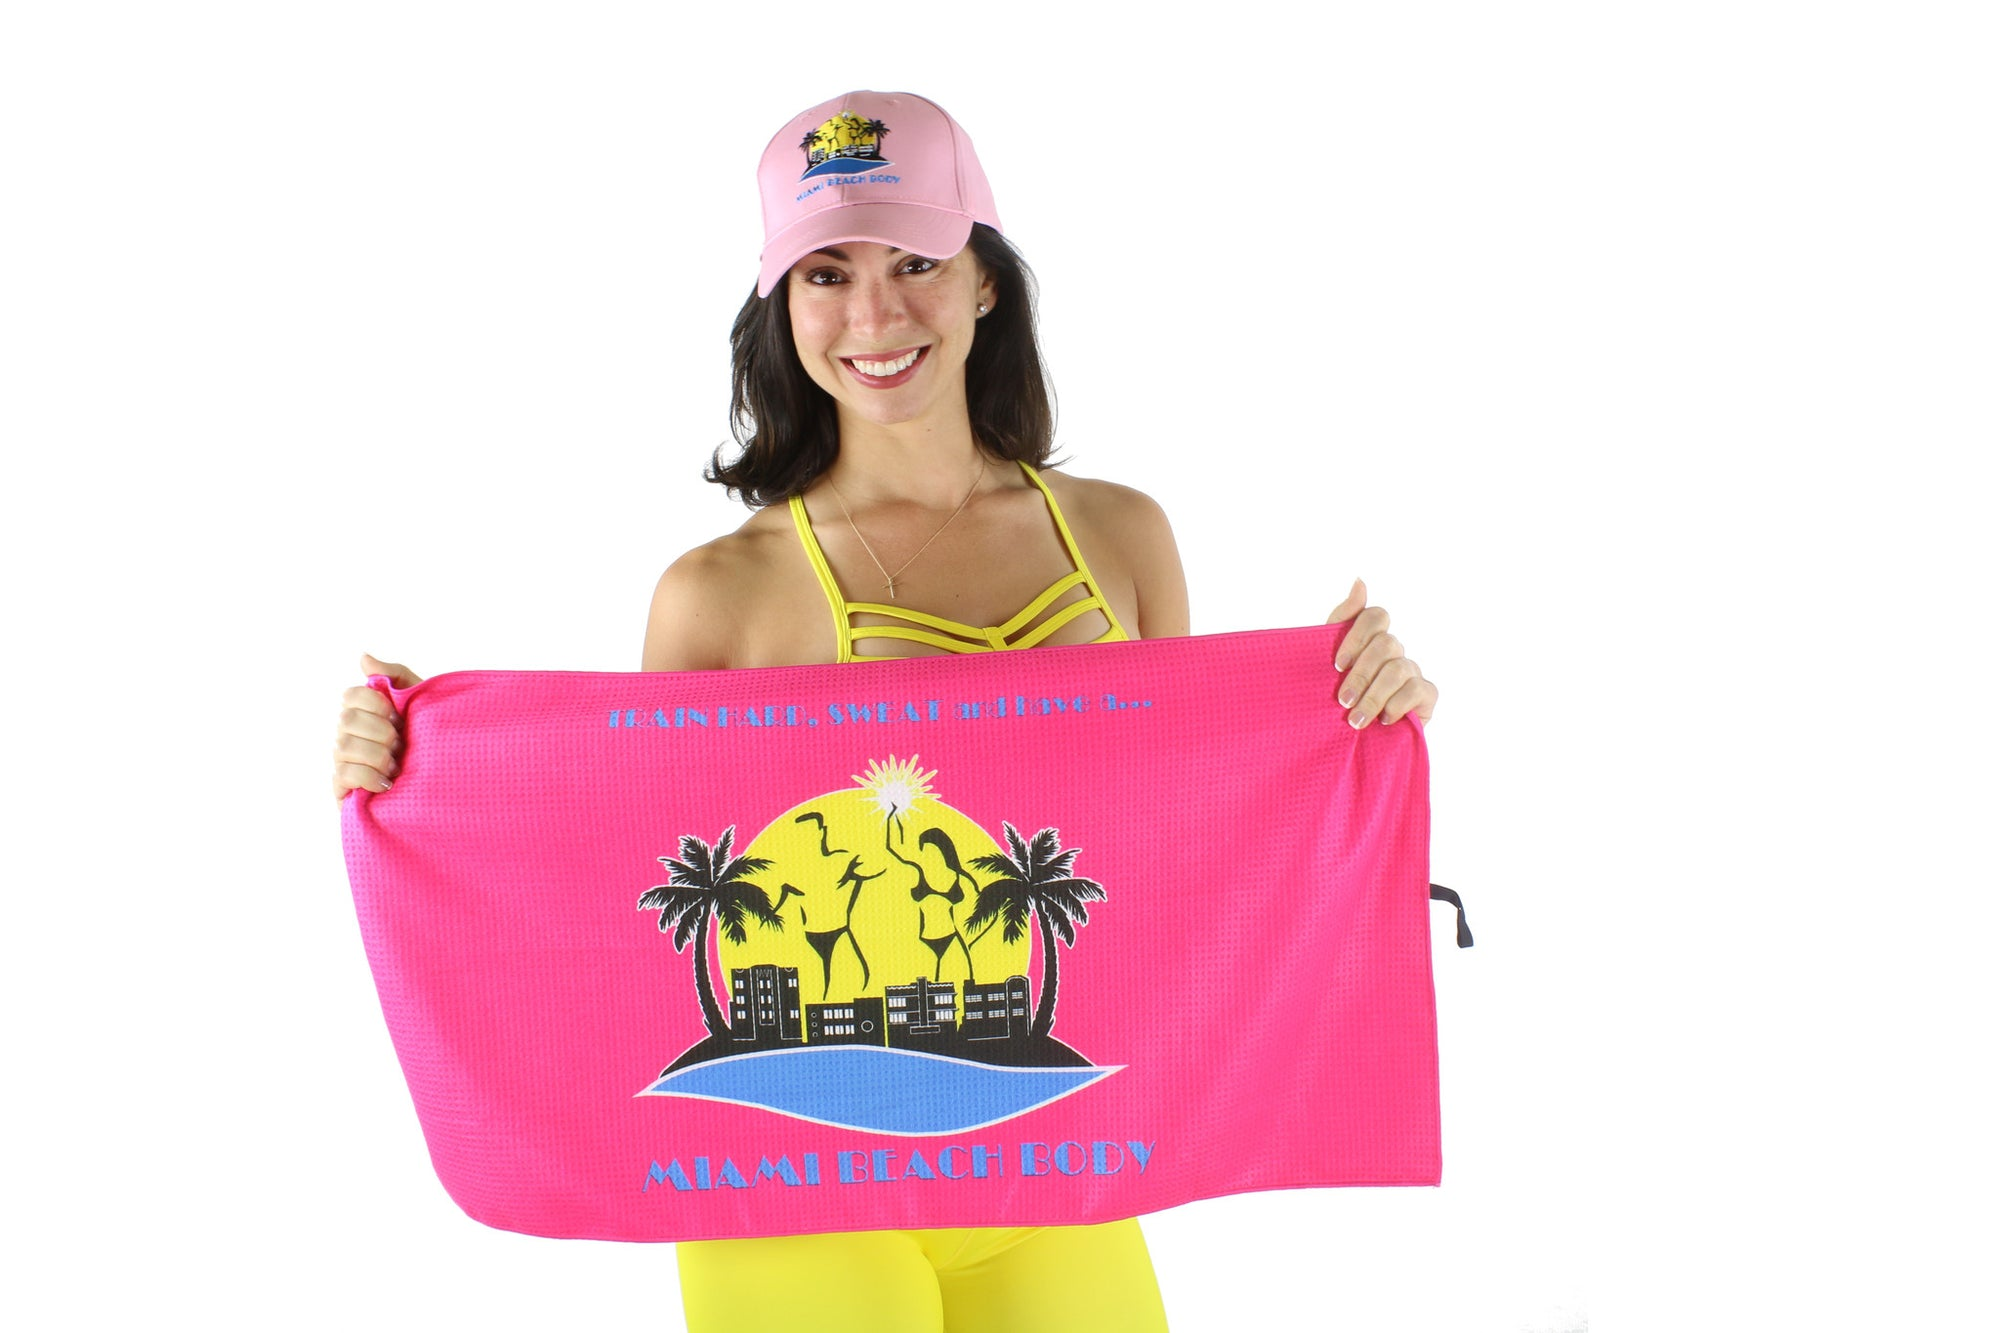 Miami Beach Body - Train Hard and Sweat Ultra Dry Sport Towel - Pink